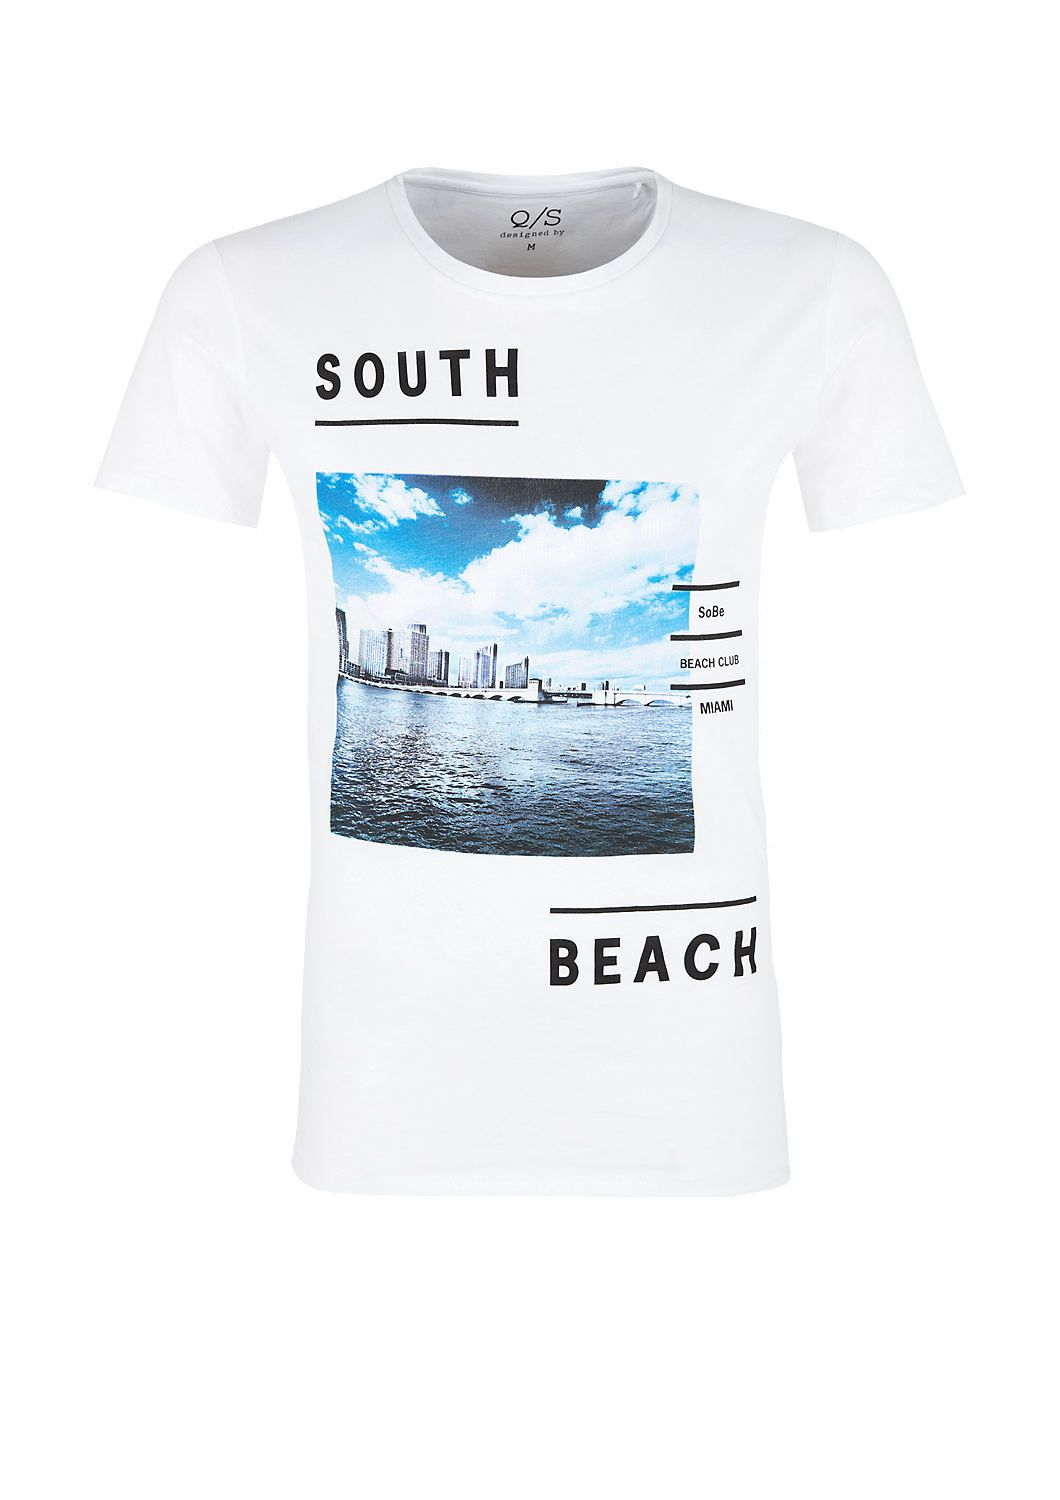 Buy T Shirt With A Miami Photo S Oliver Shop Miami Photos T Shirt Graphic Tee Design